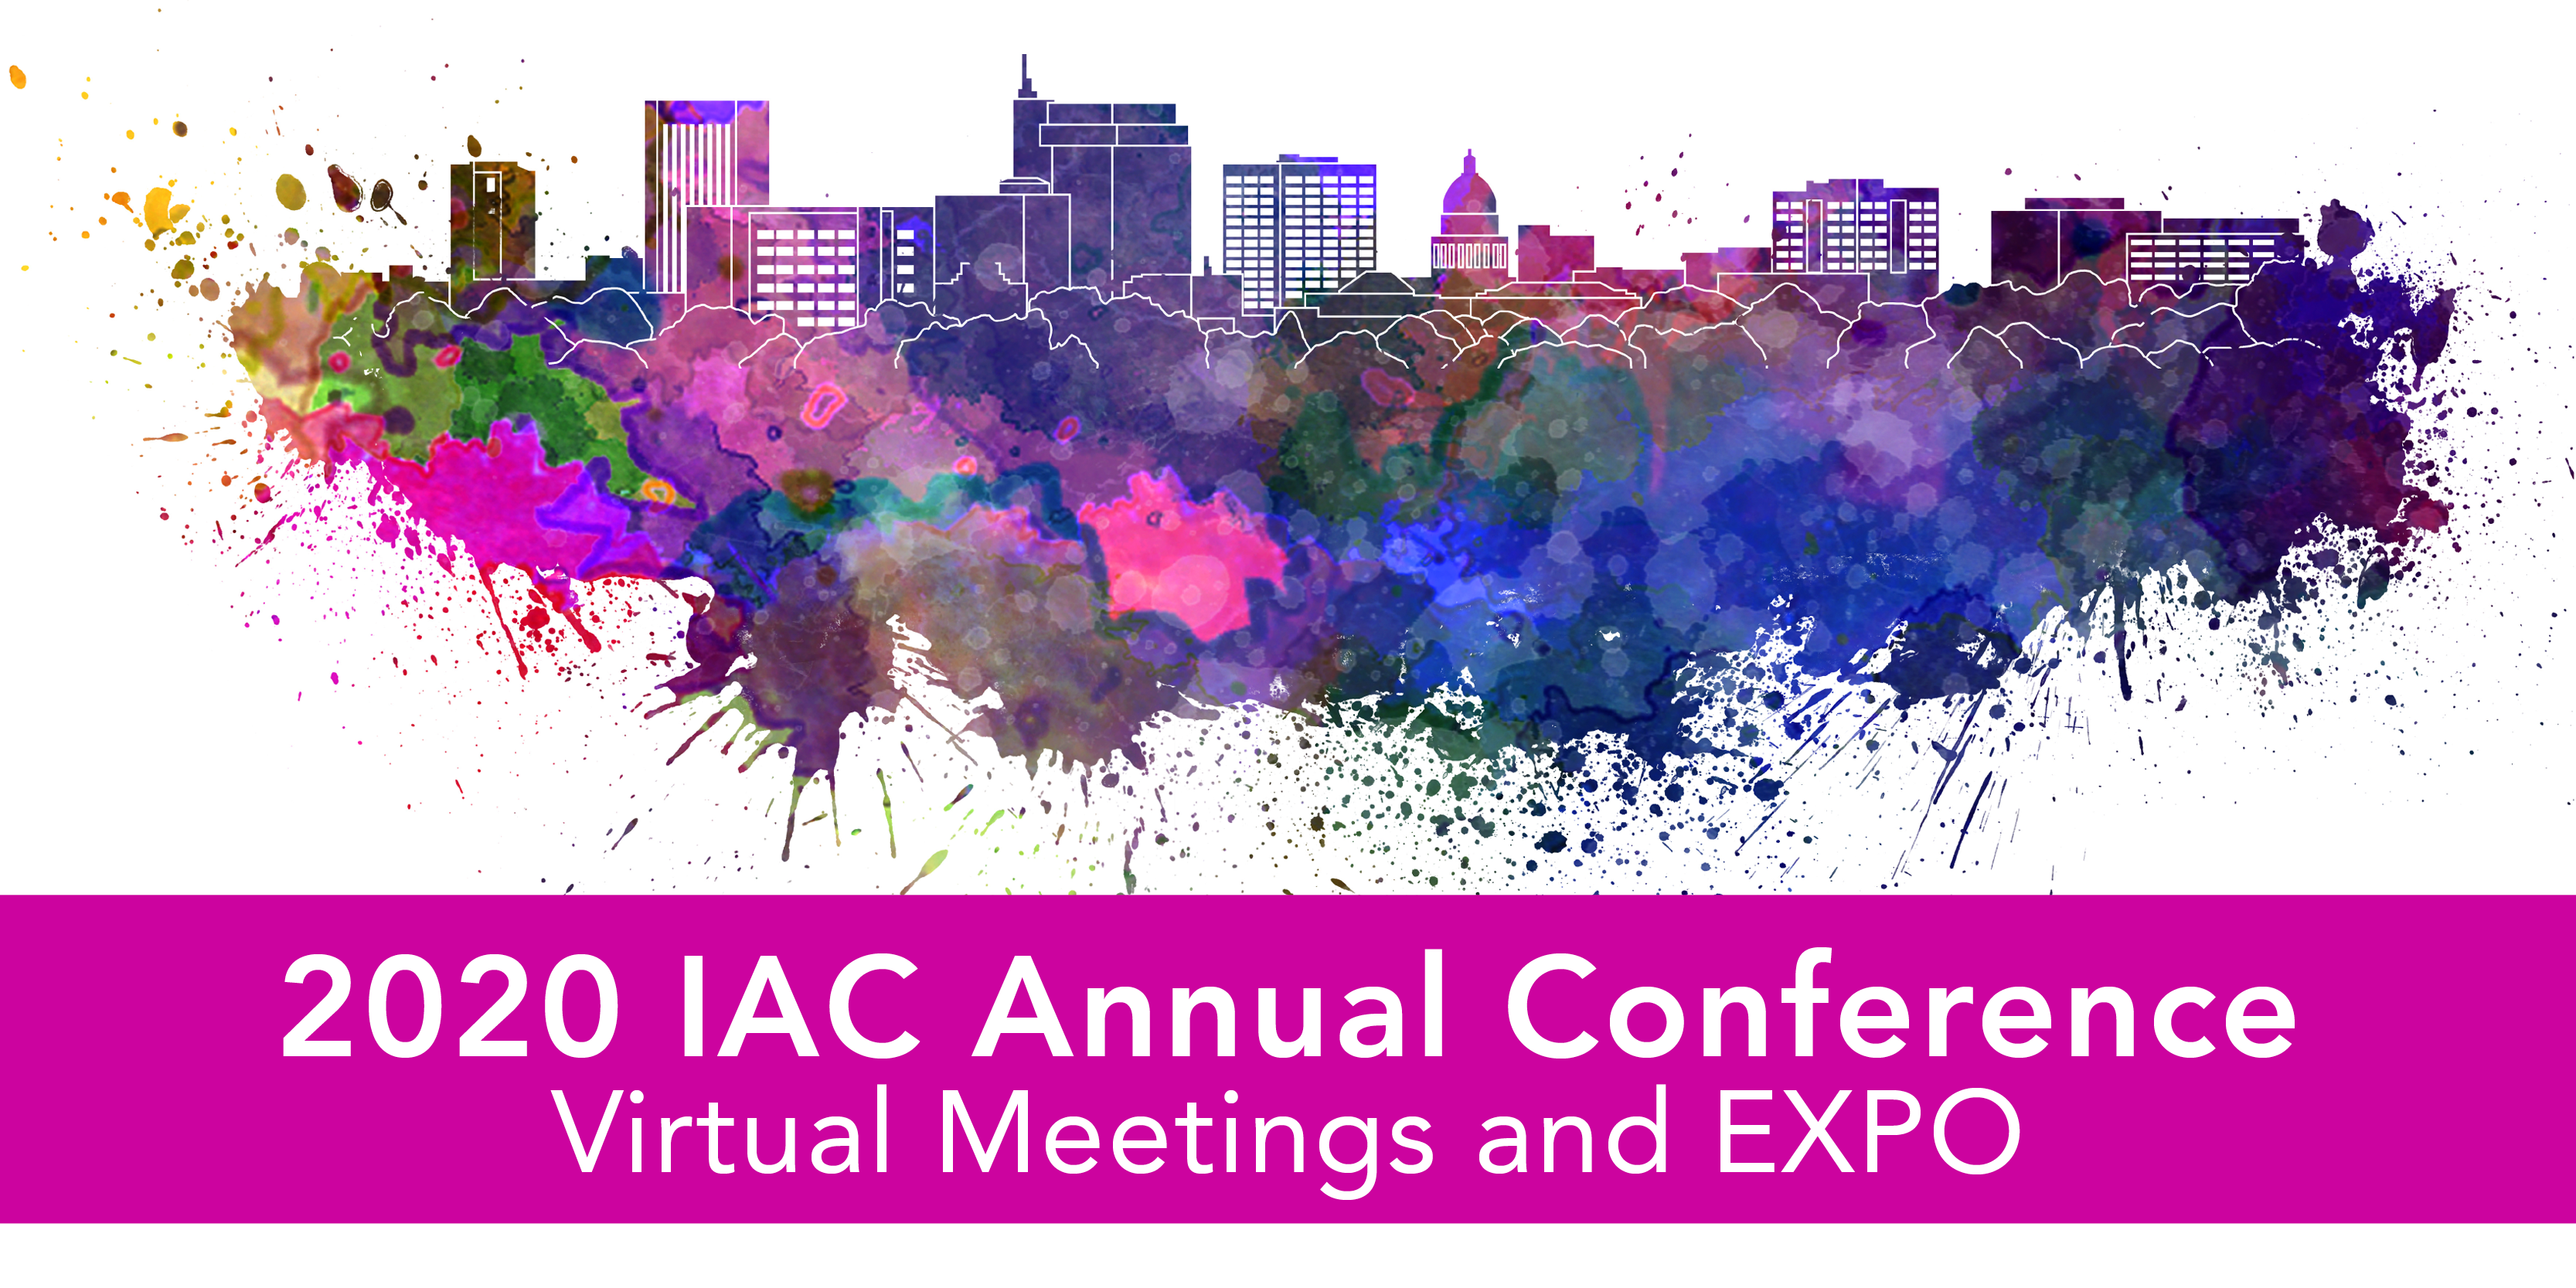 2020 IAC Annual Conference is Going Virtual